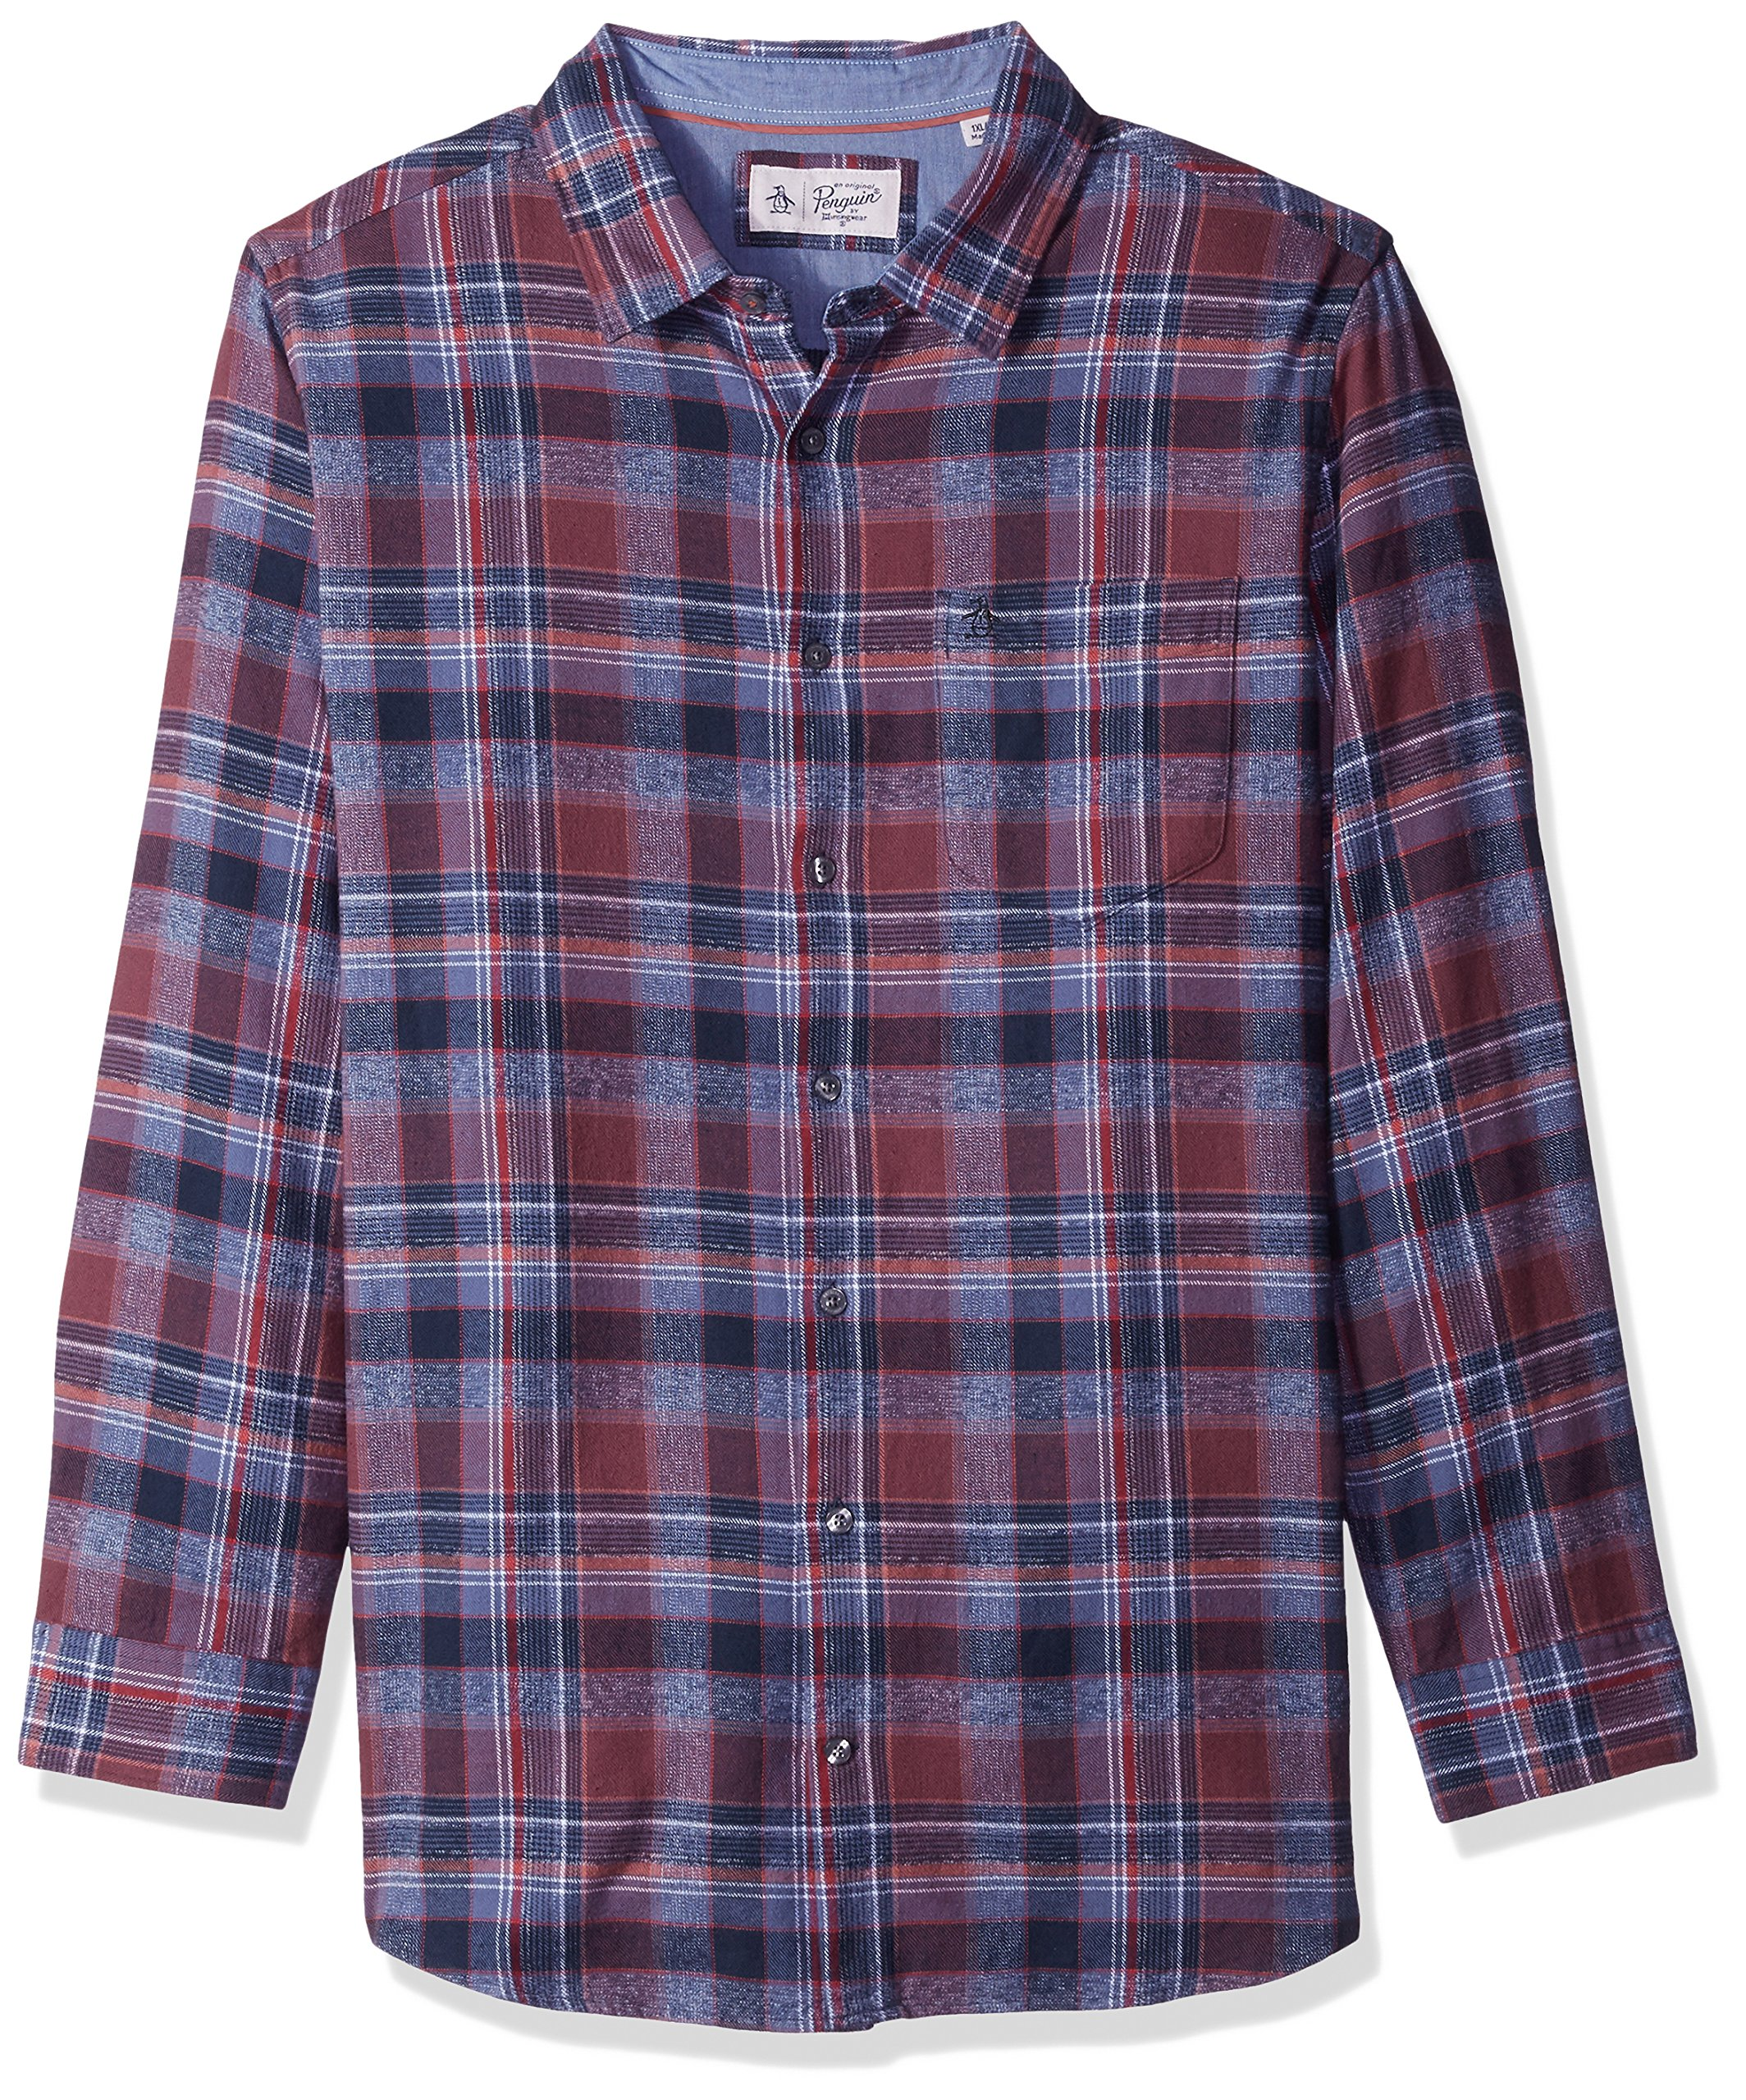 Original Penguin Men's Big and Tall Twisted Yarn Flannel